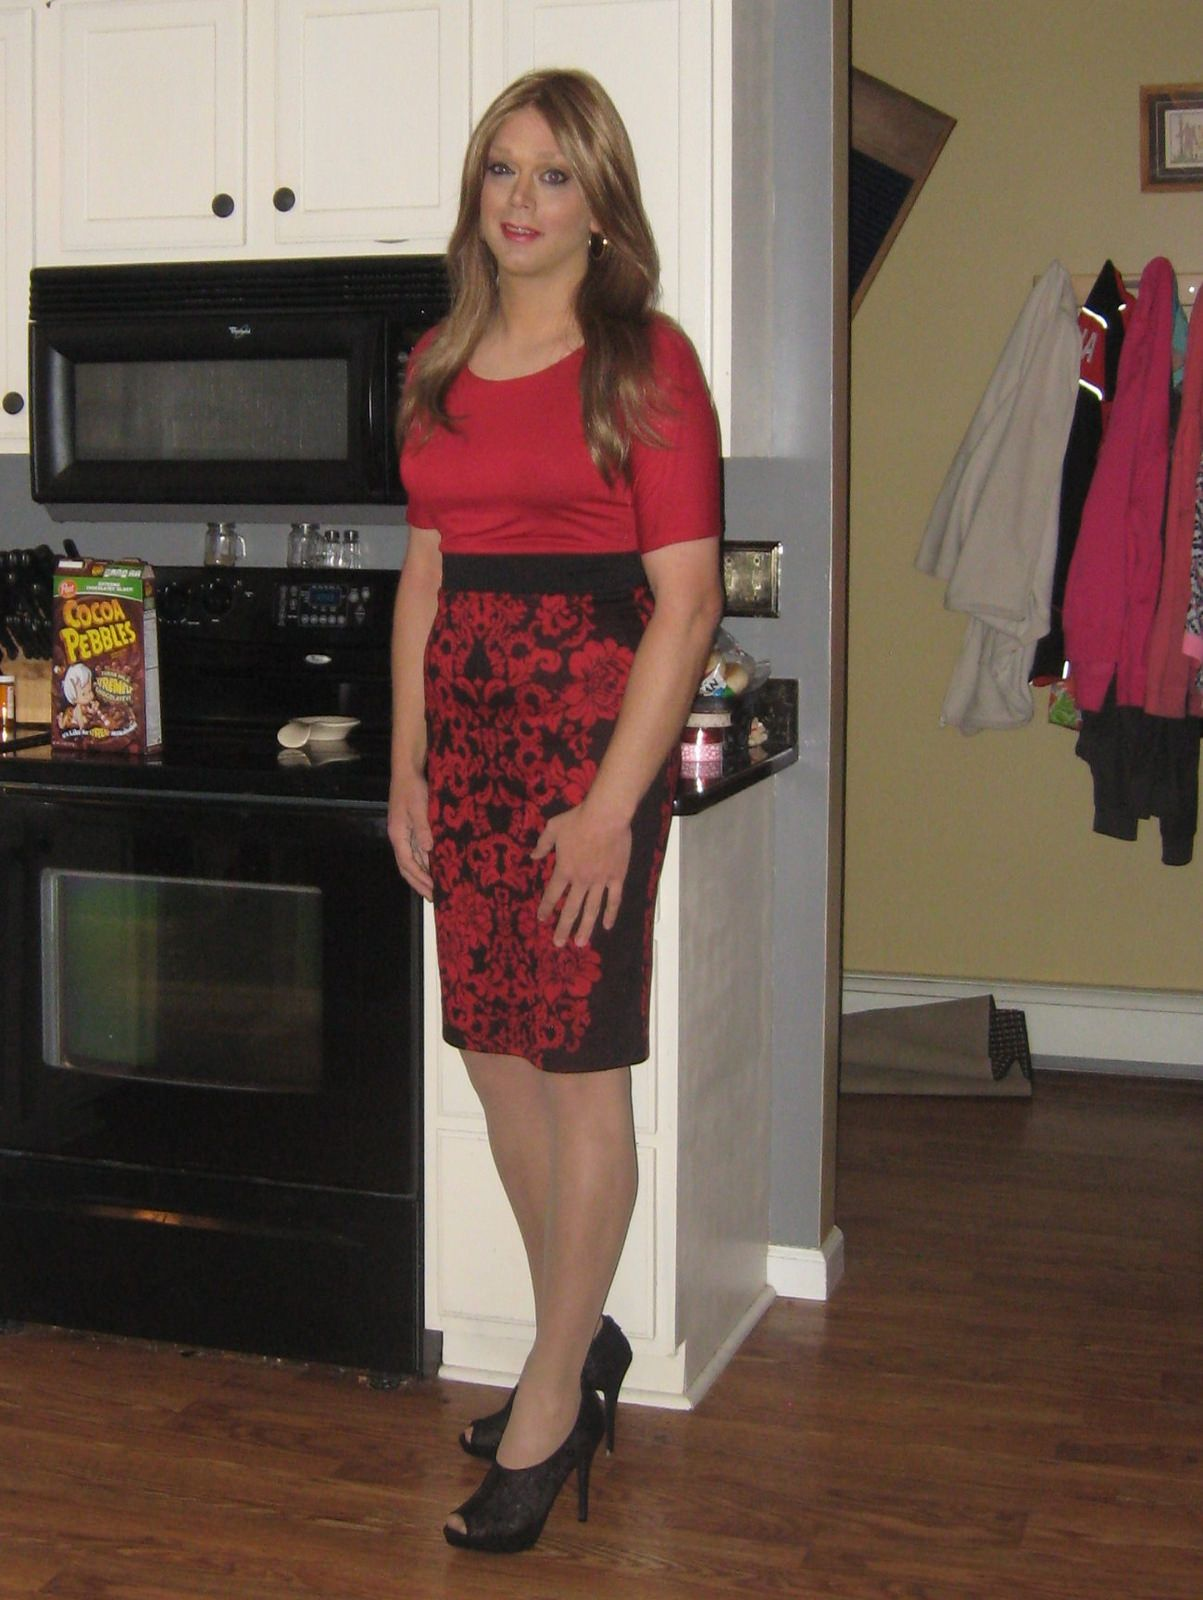 Cross Dresser Pictures Image Tagged In Not A Crossdresser